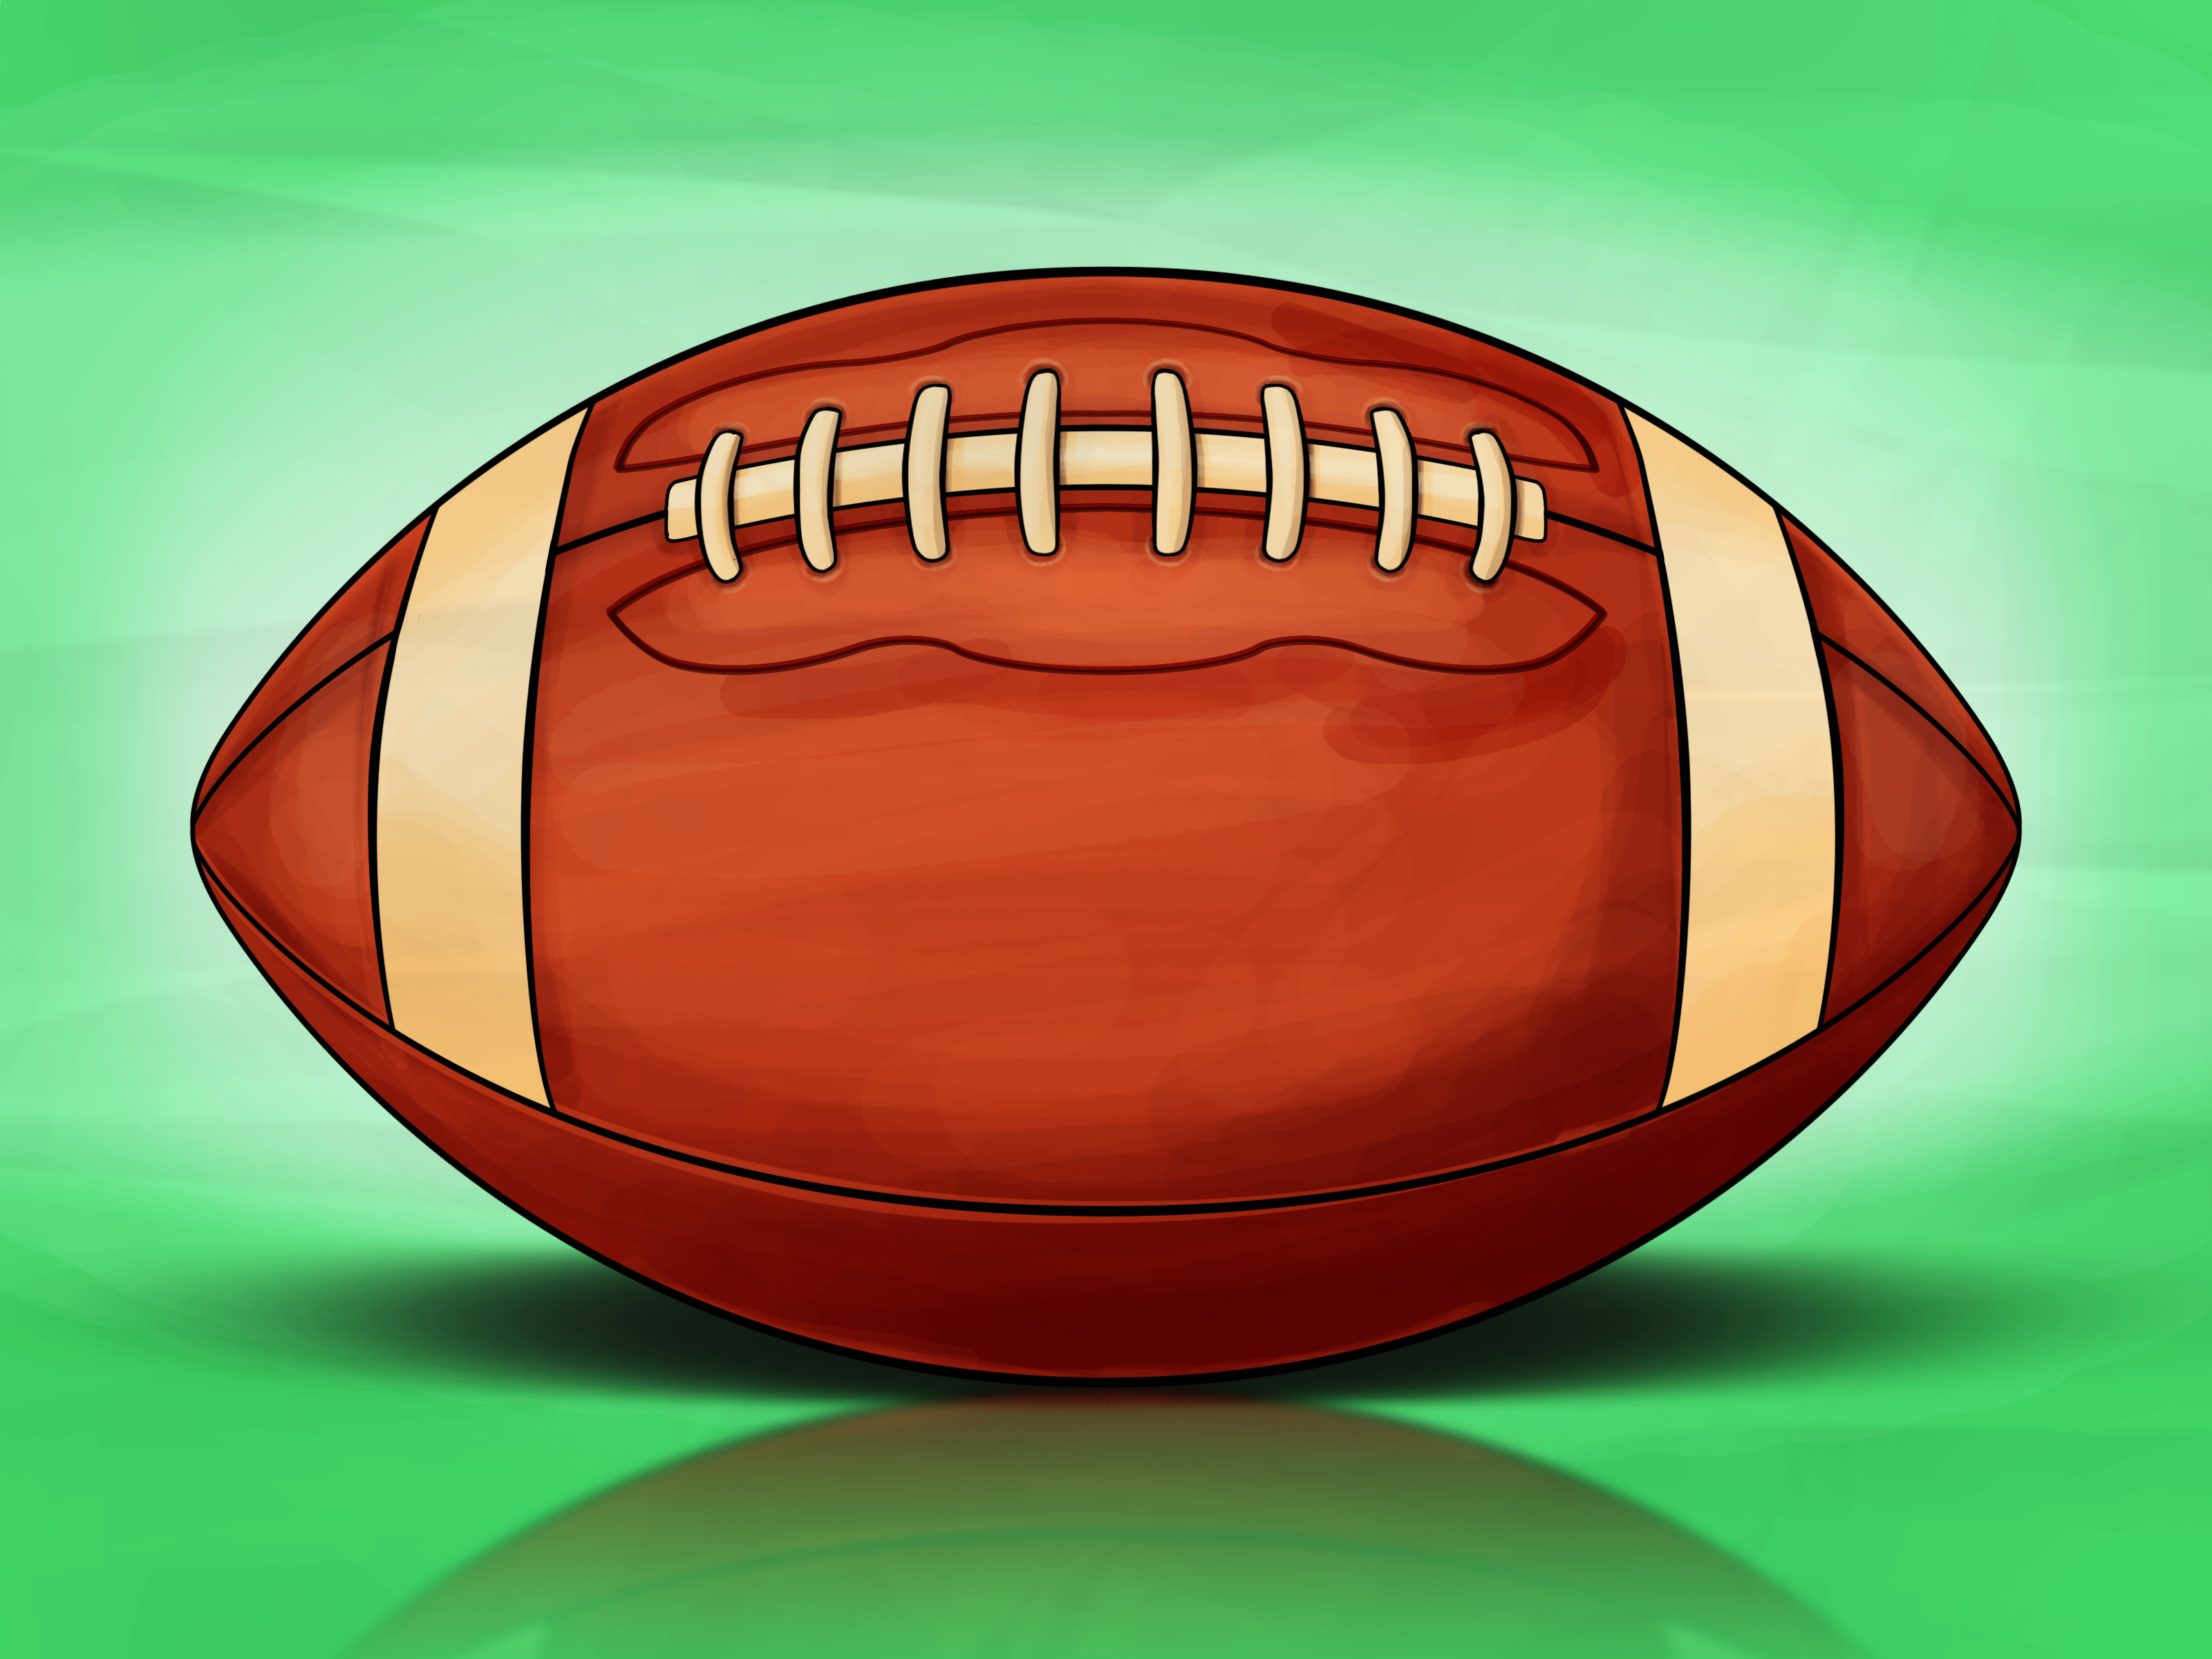 3200x2400 How To Draw A Football 13 Steps (With Pictures)